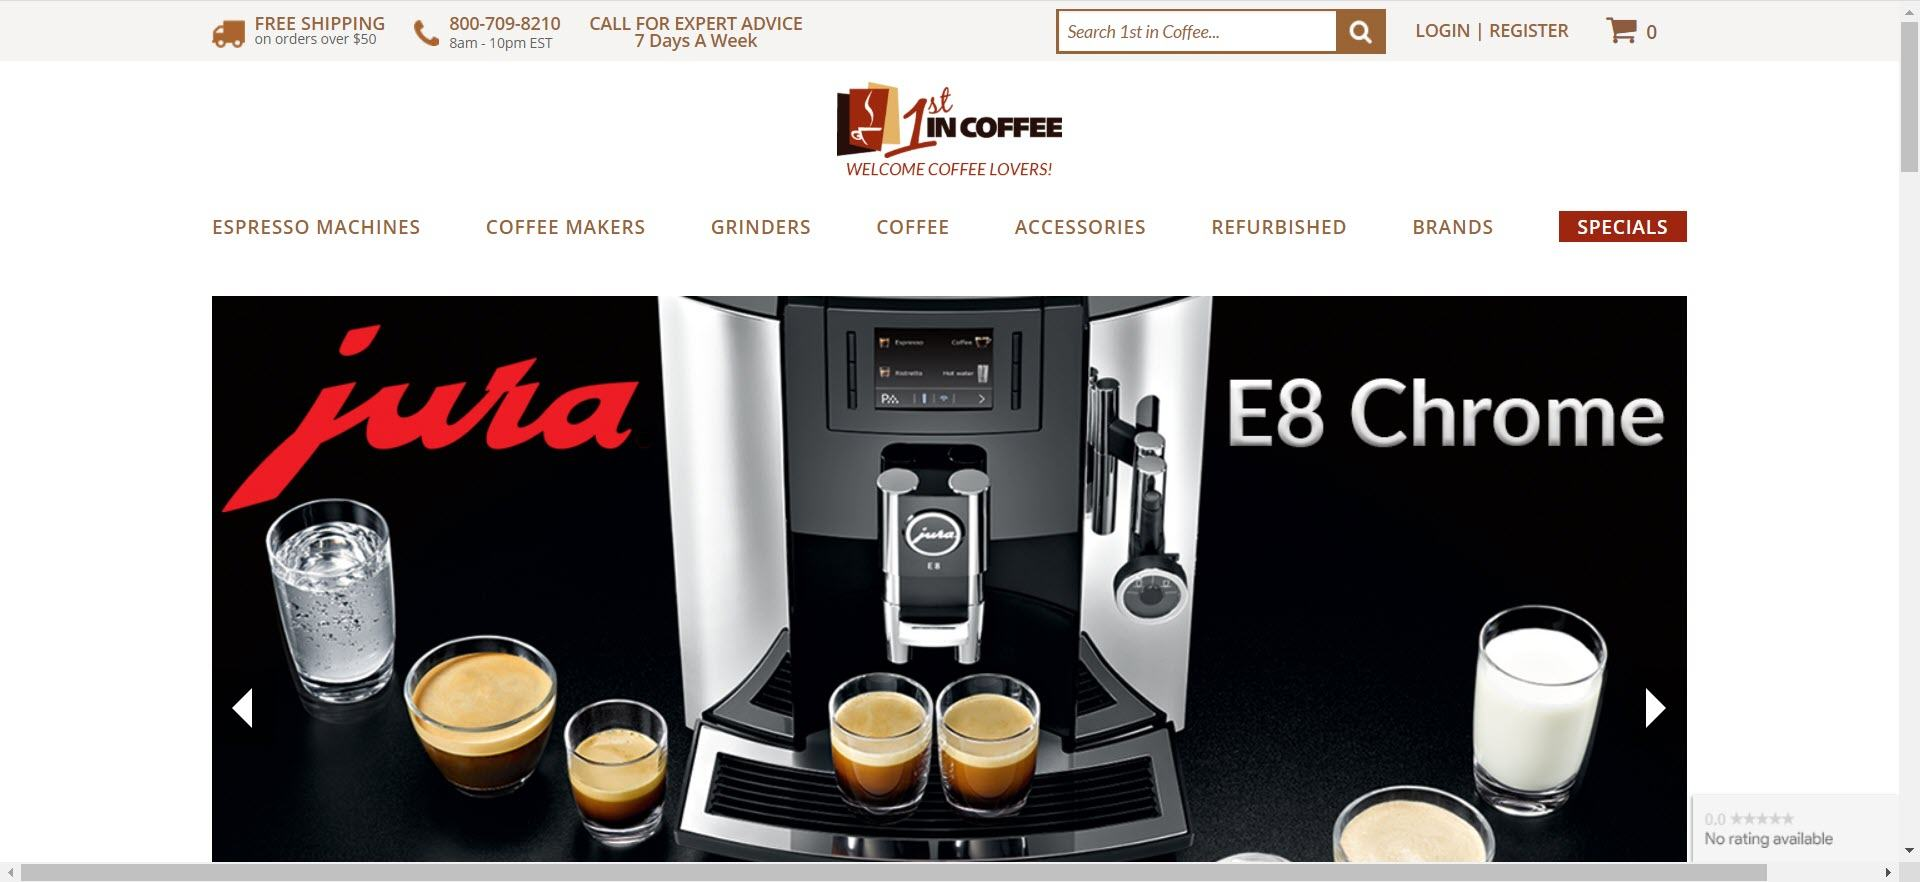 coffee affiliate programs - 1st in Coffee